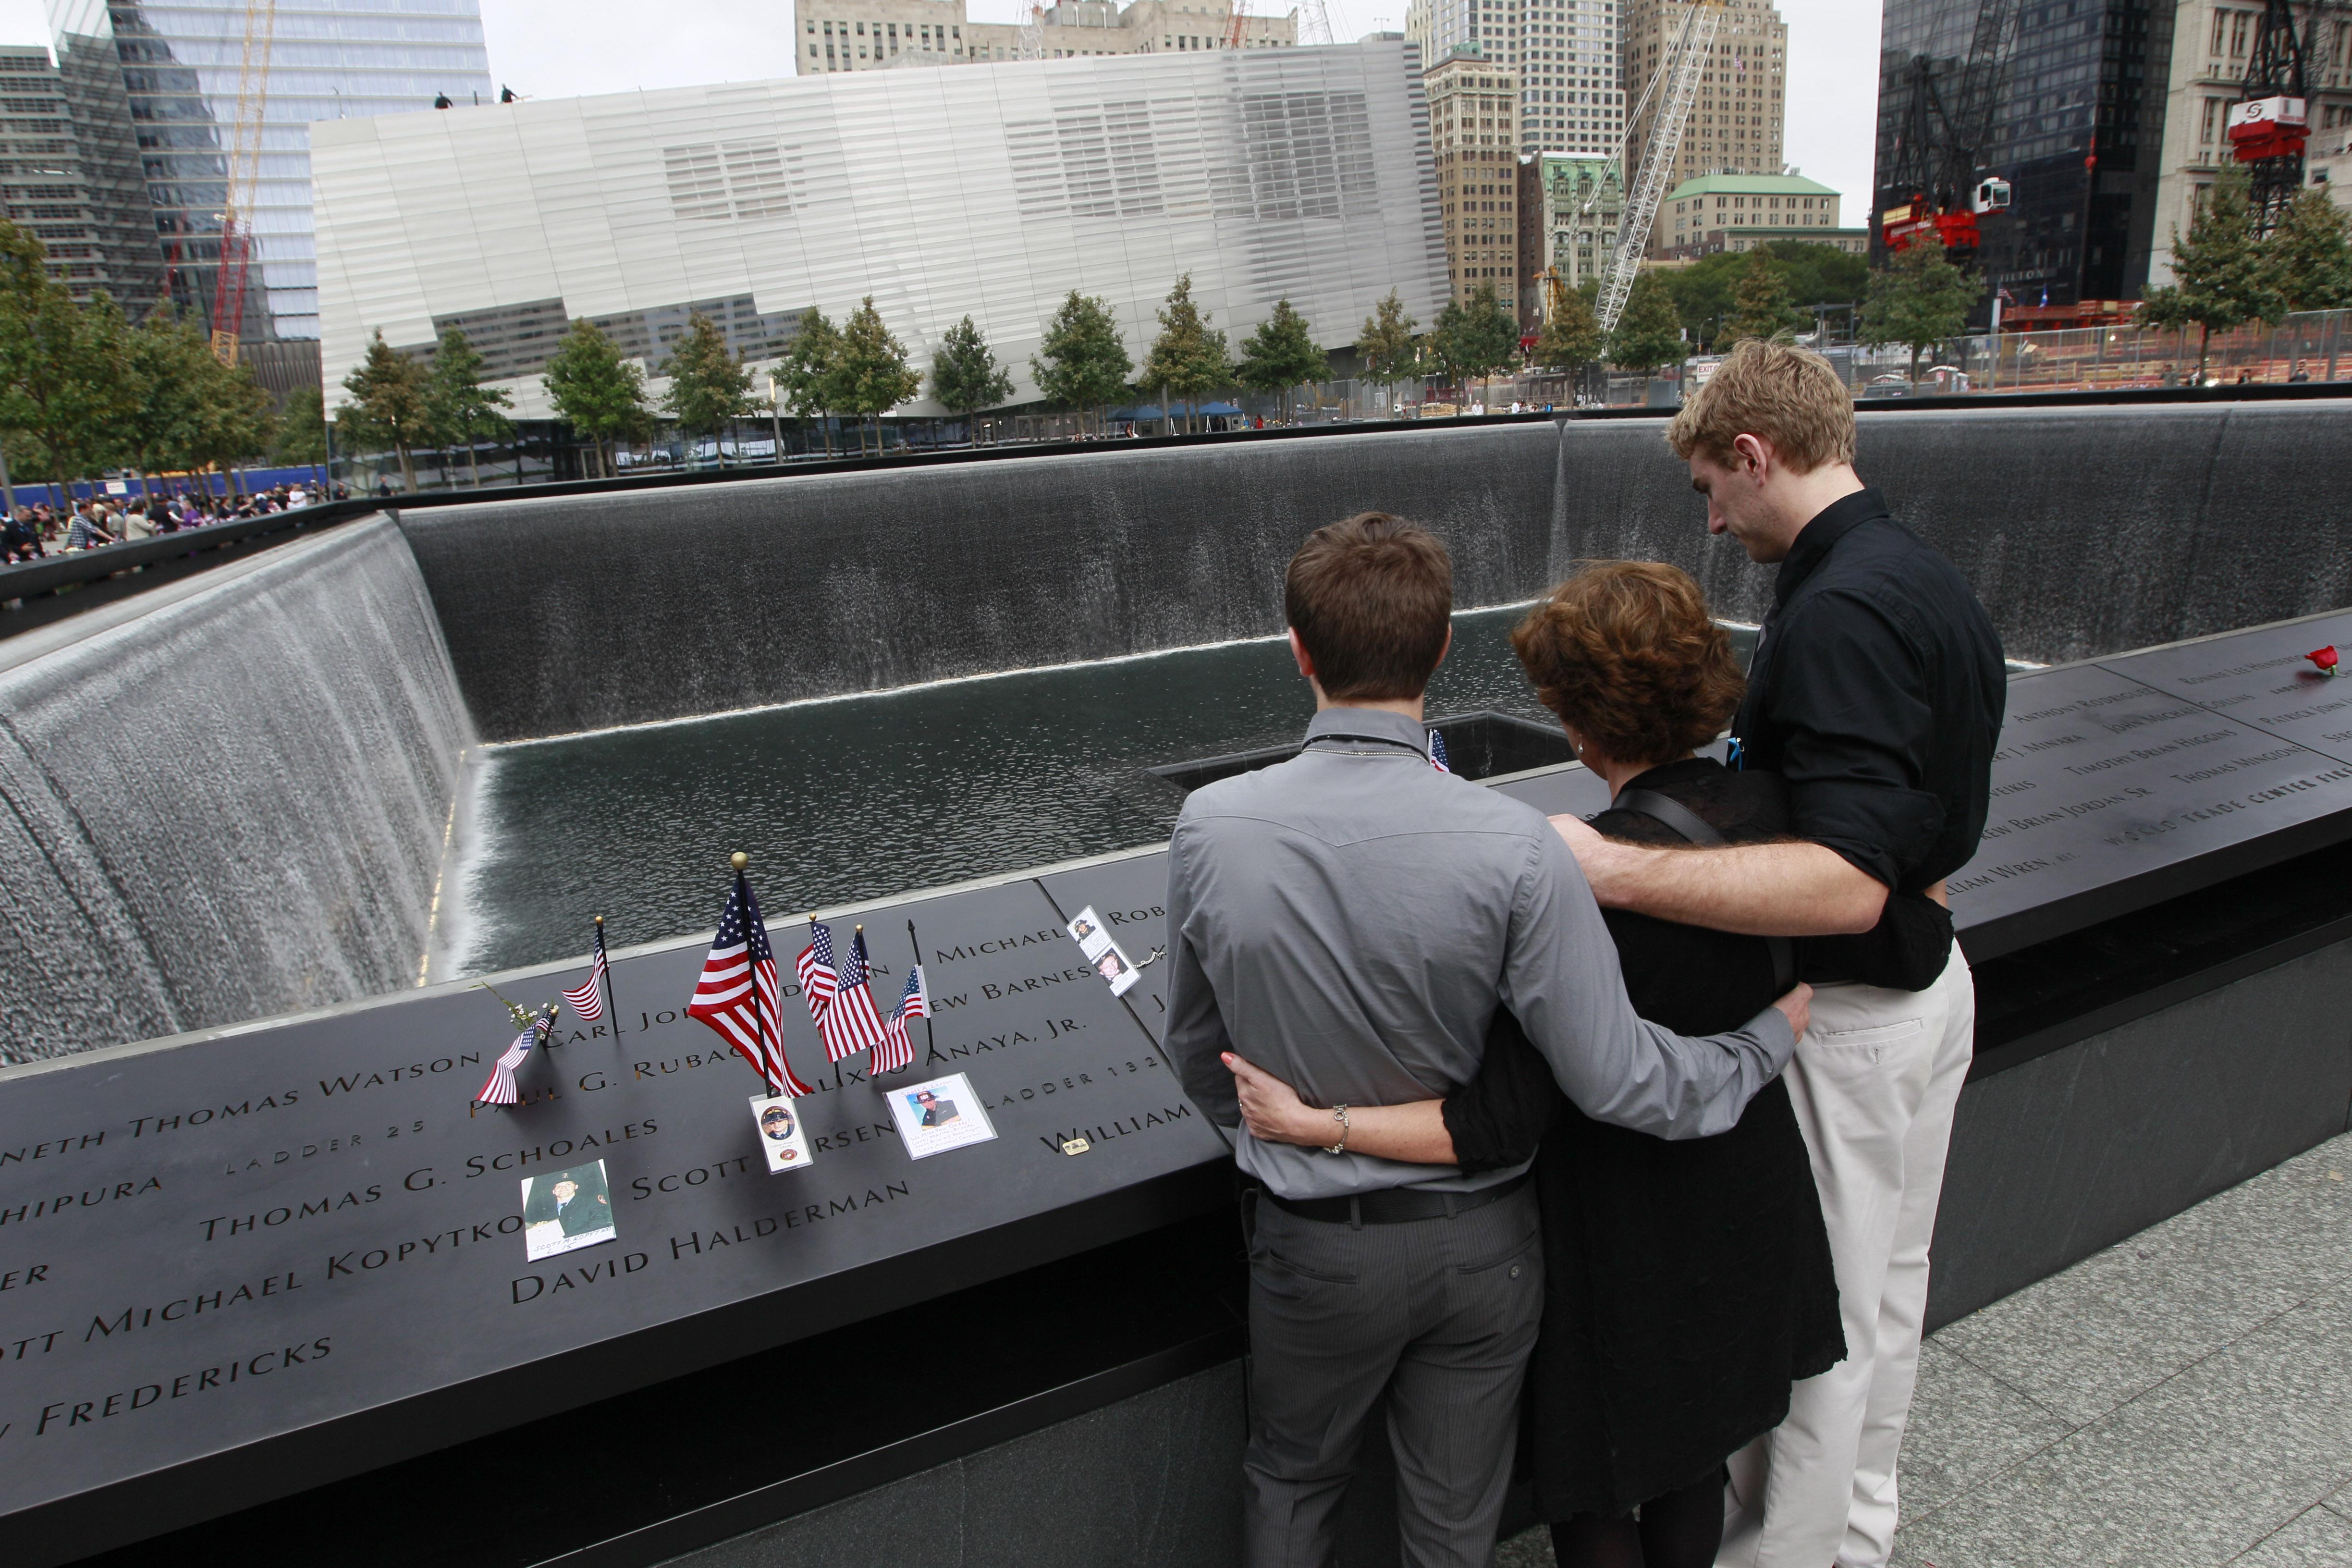 A Day of Remembrance: Thousands Expected at Ground Zero for 9/11 Anniversary